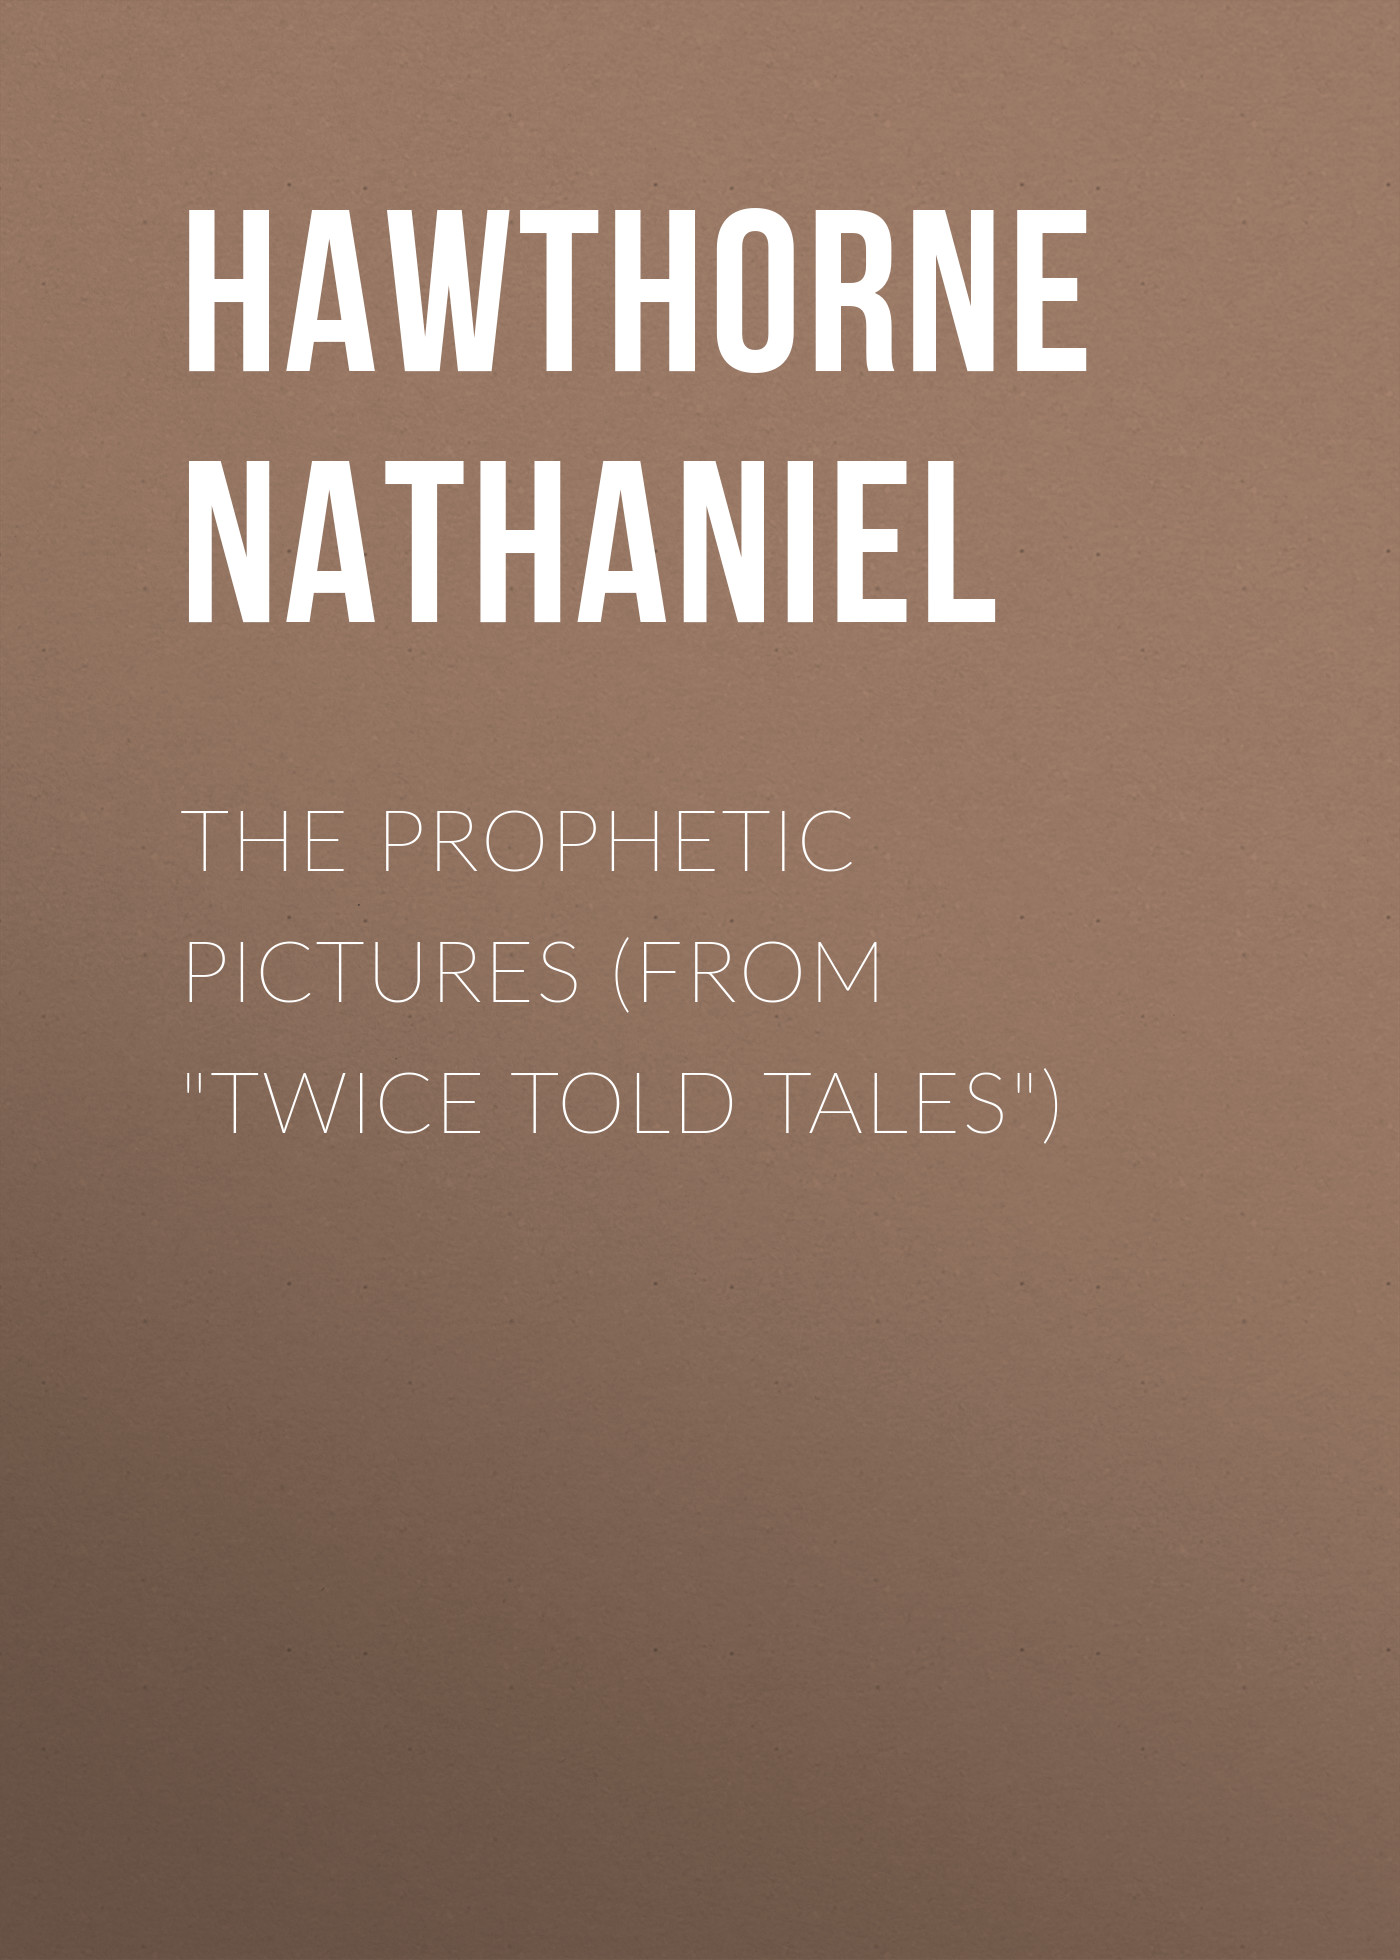 Hawthorne Nathaniel The Prophetic Pictures (From Twice Told Tales) hawthorne n twice told tales isbn 9785521070510